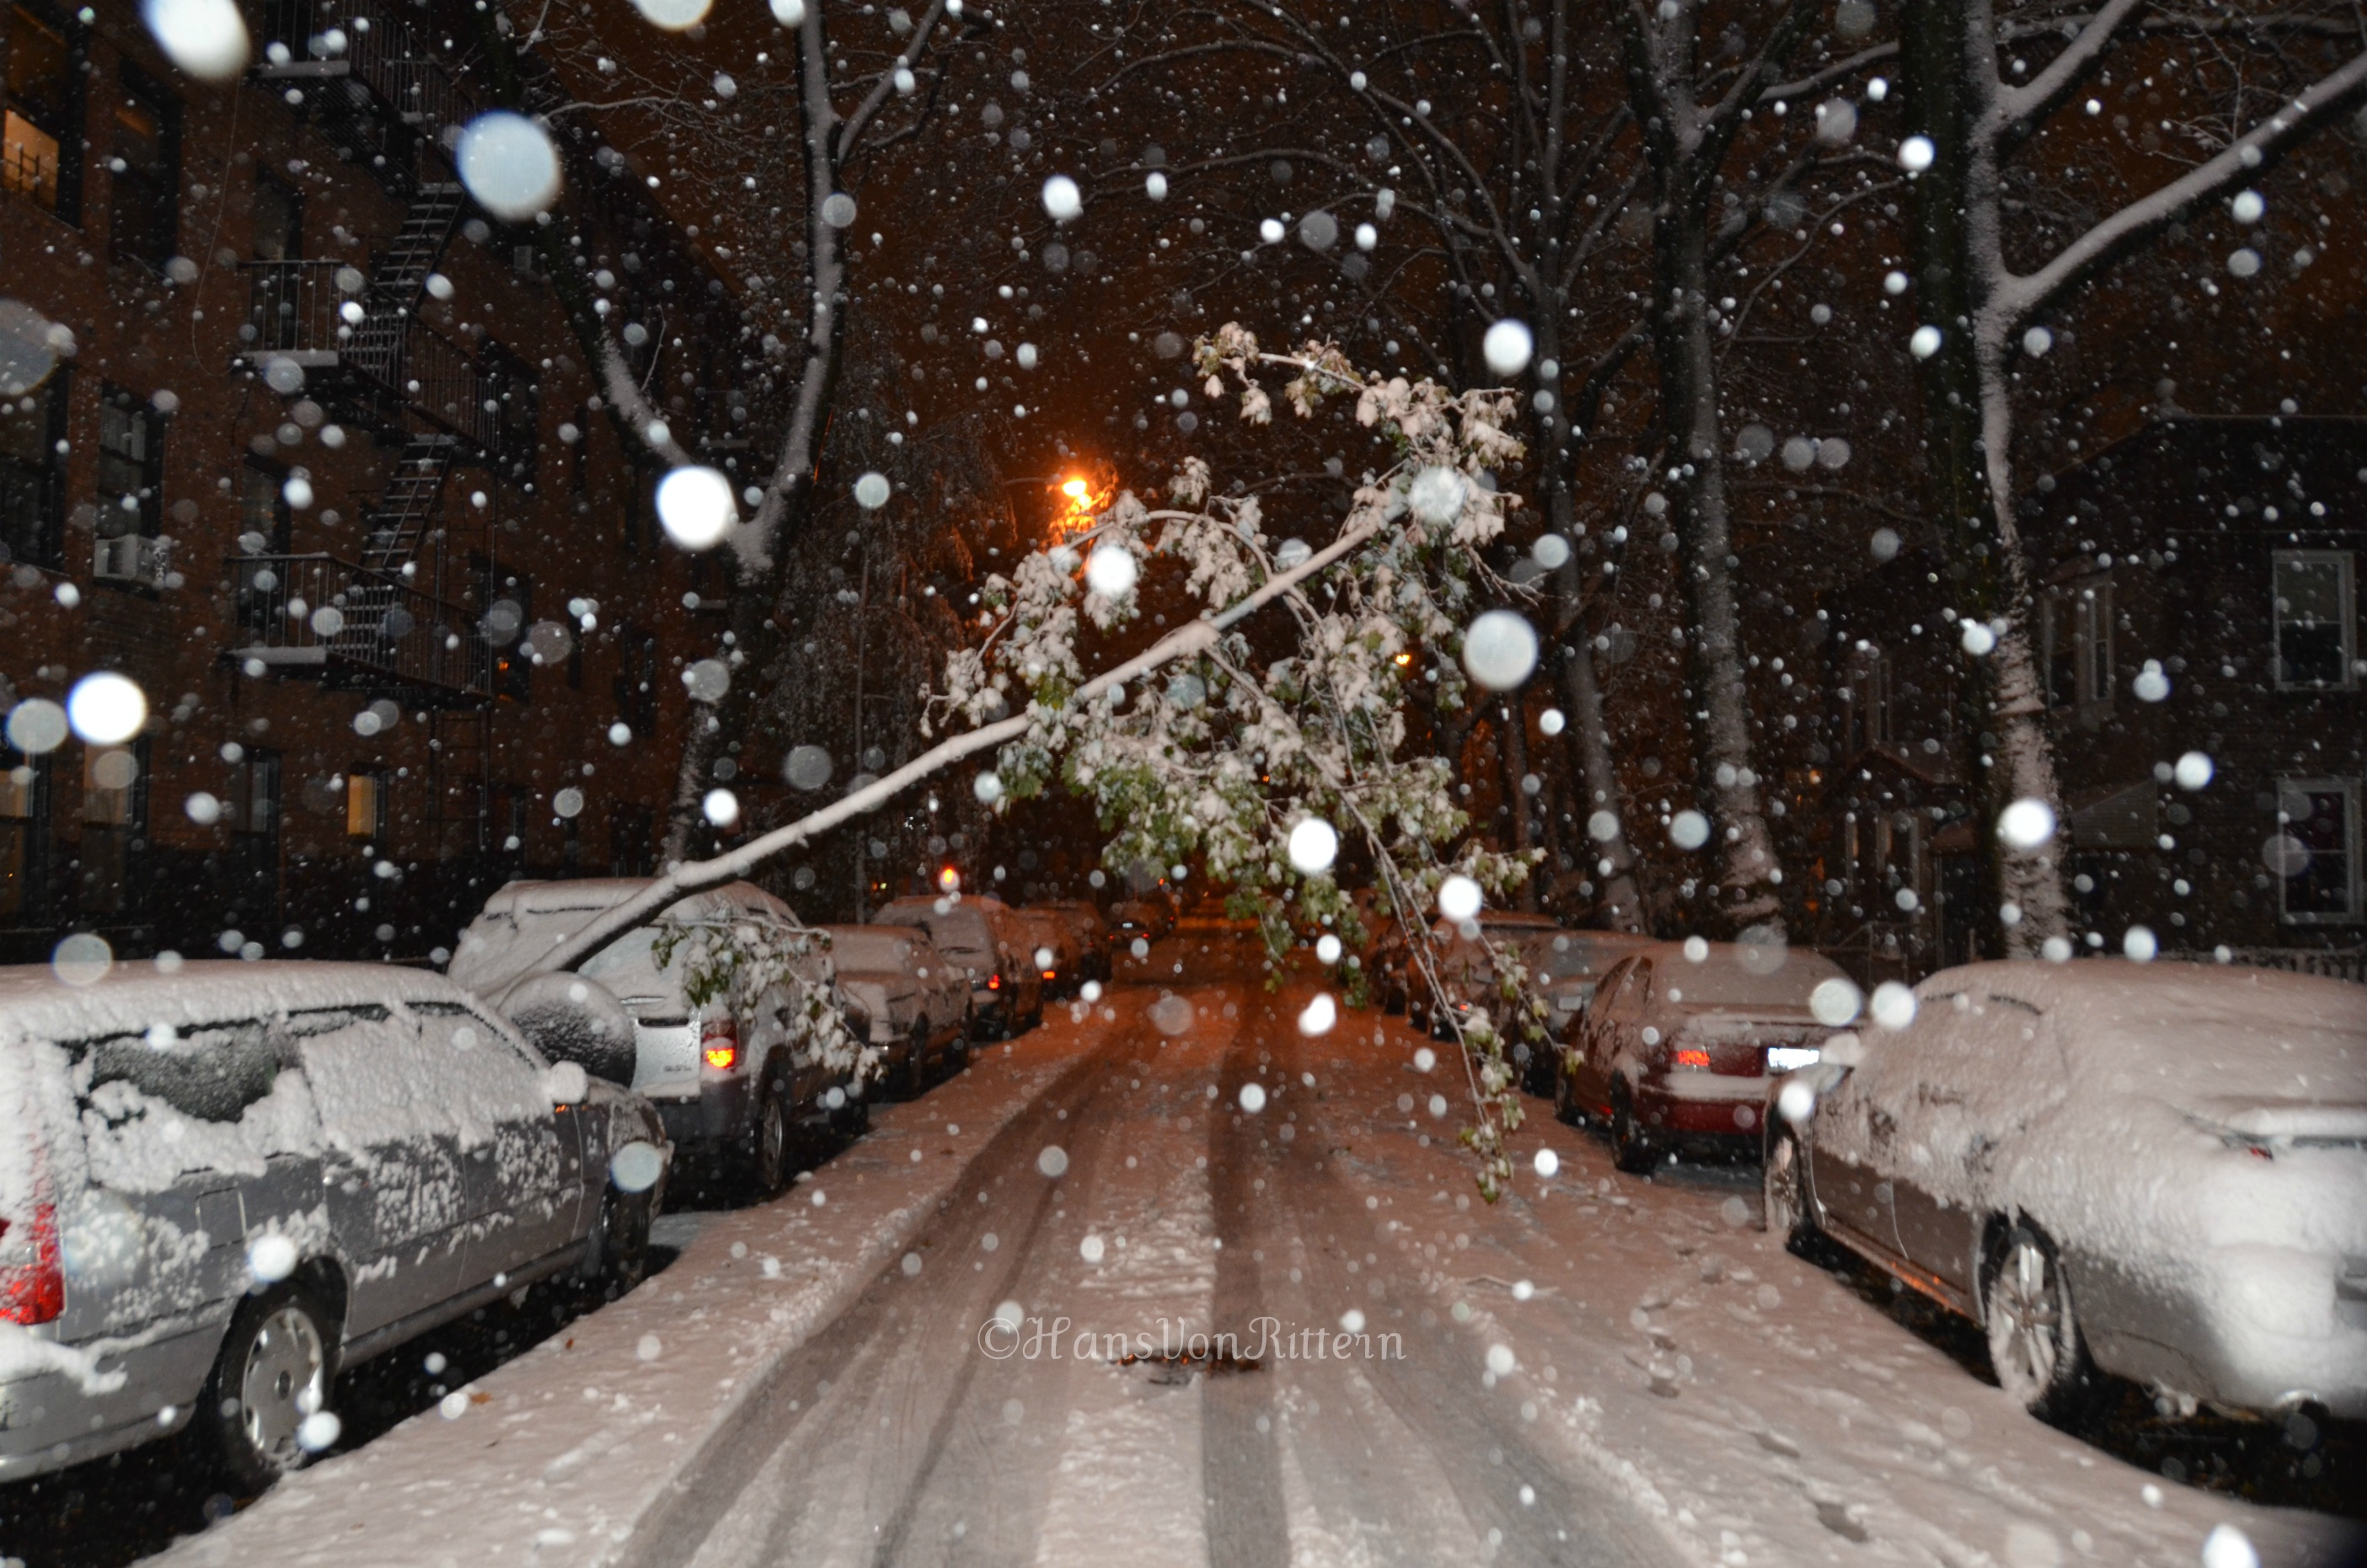 Christmas Snow Falling Wallpaper Trees With Snow New York City In The Wit Of An Eye